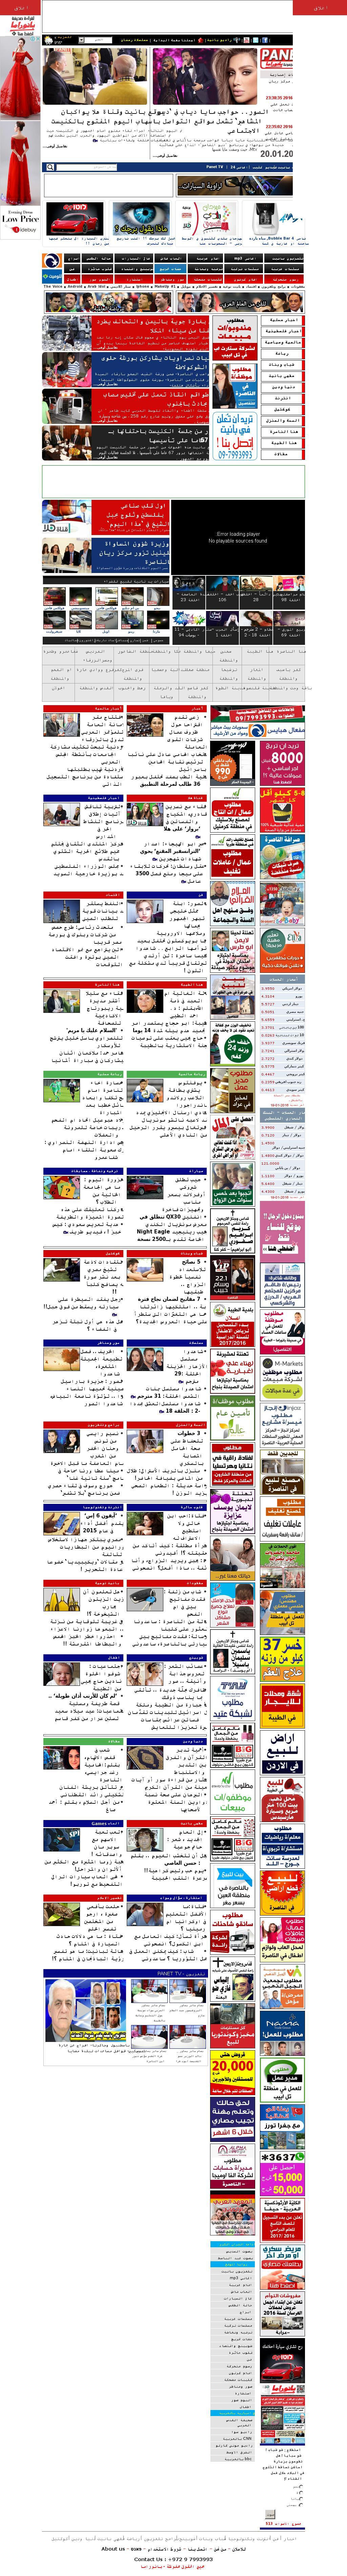 Panet at Wednesday Jan. 20, 2016, 1:17 a.m. UTC